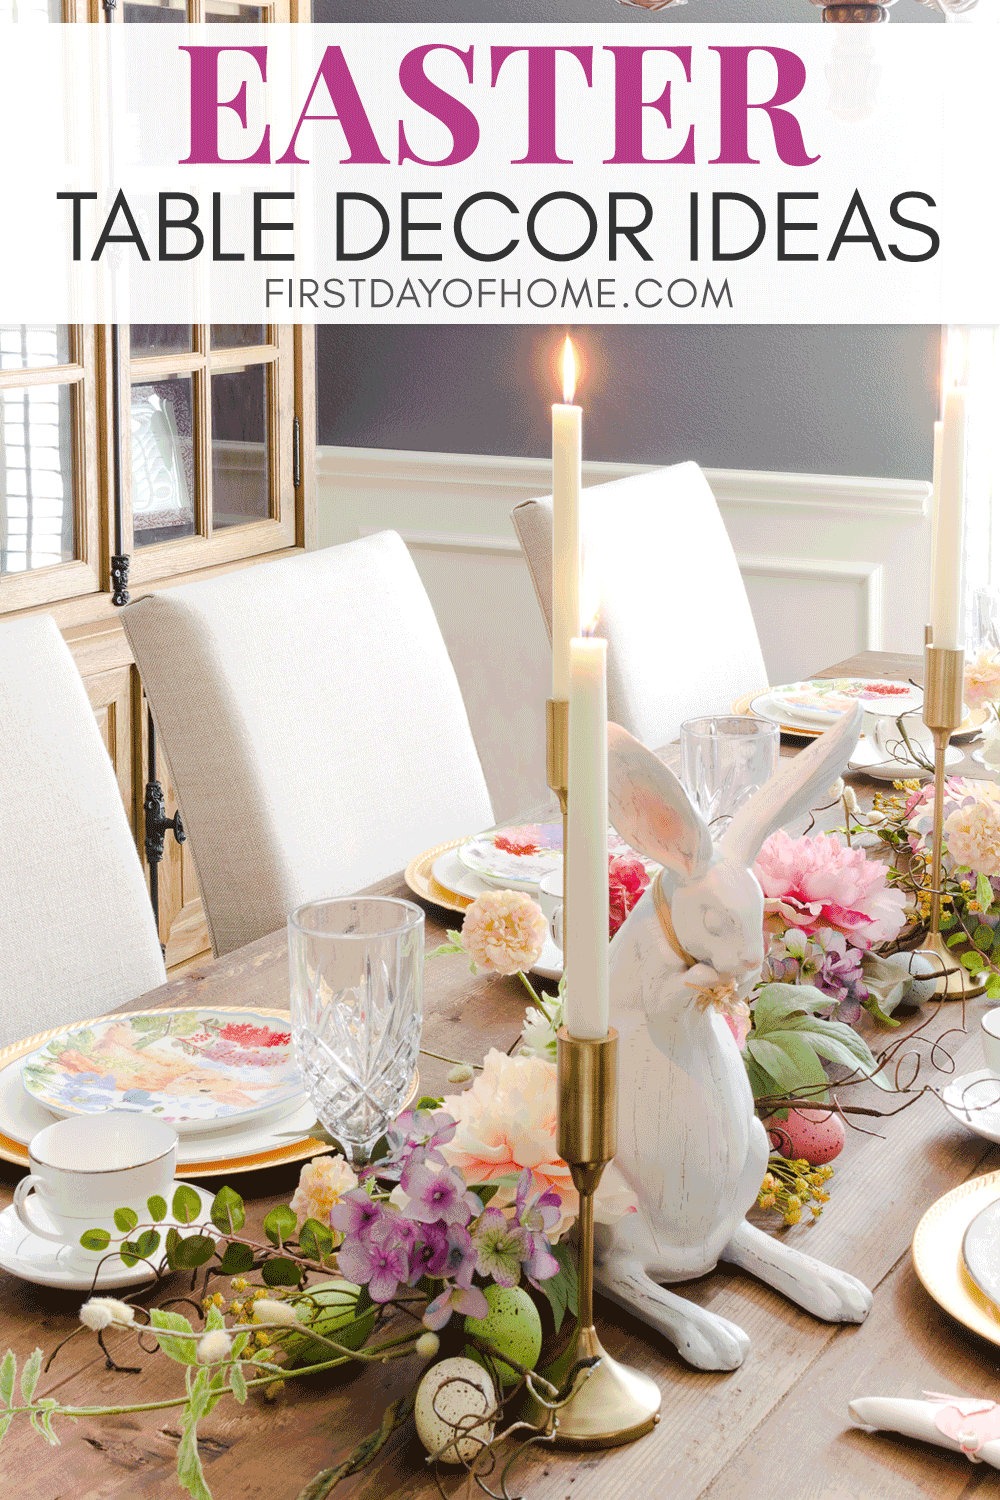 Easter table decorations with floral garland, Easter bunny figurines, taper candles and DIY napkin rings